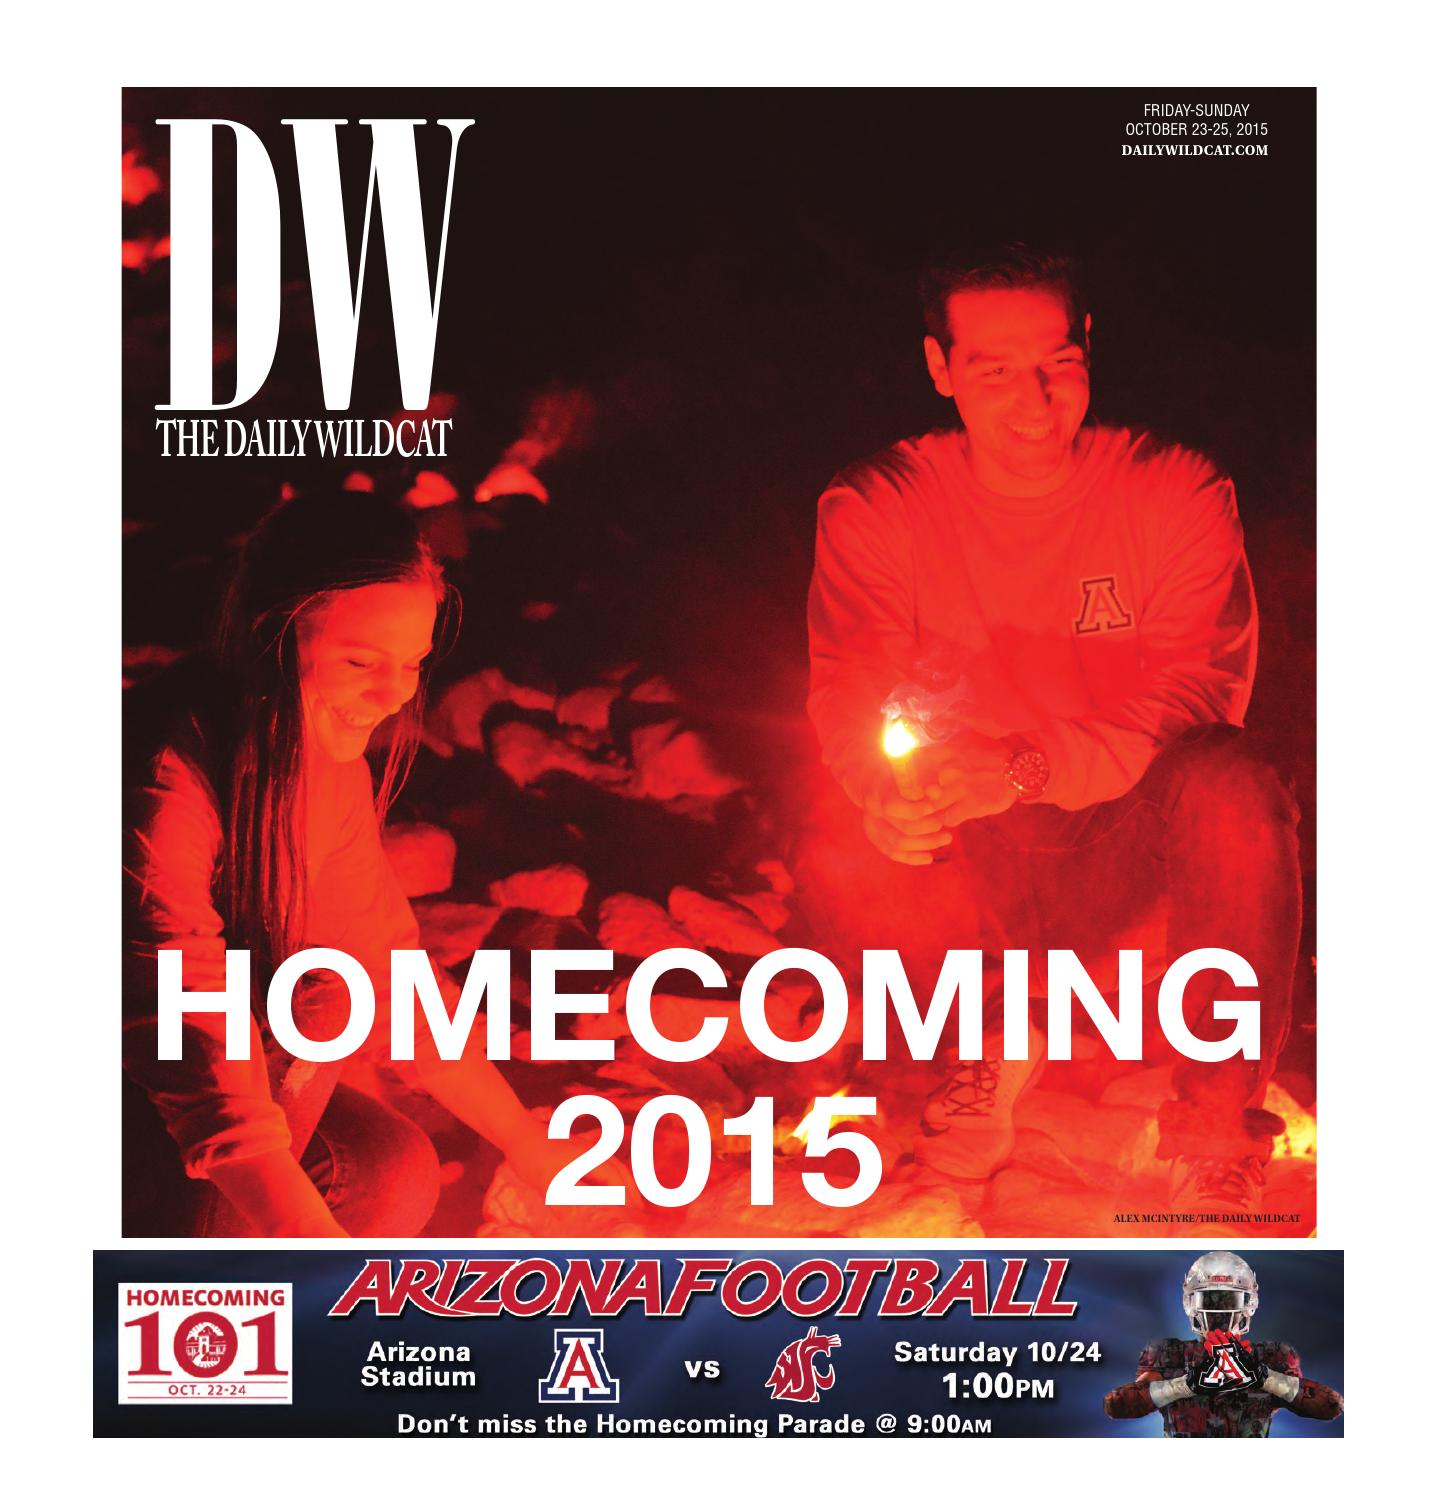 The Daily Wildcat 10 23 15 - Homecoming 2015 Edition by